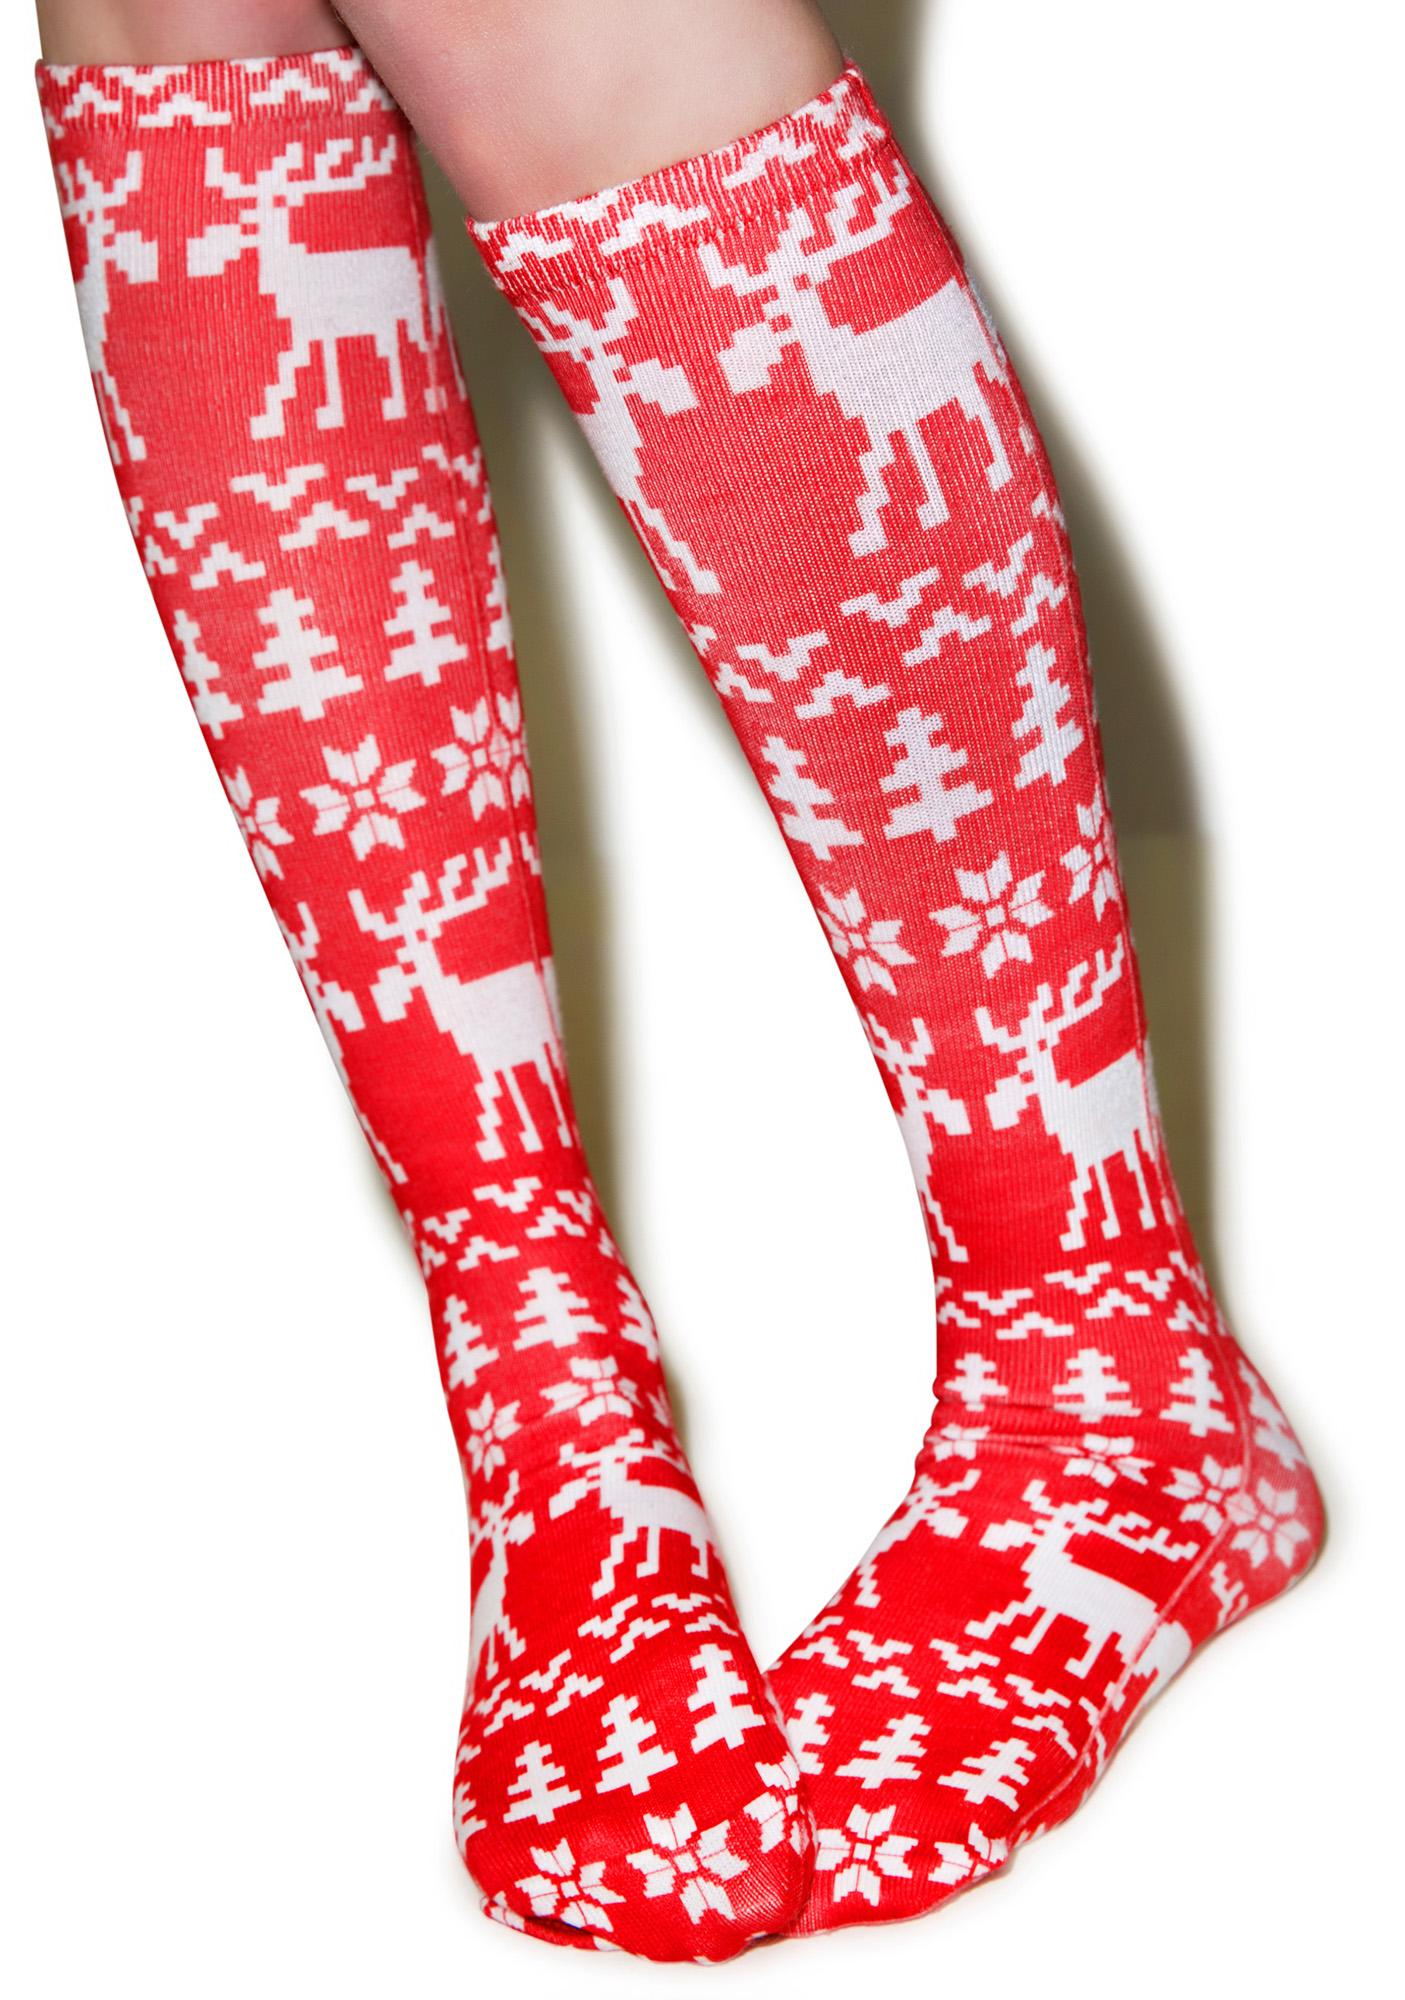 Merry Moose Socks